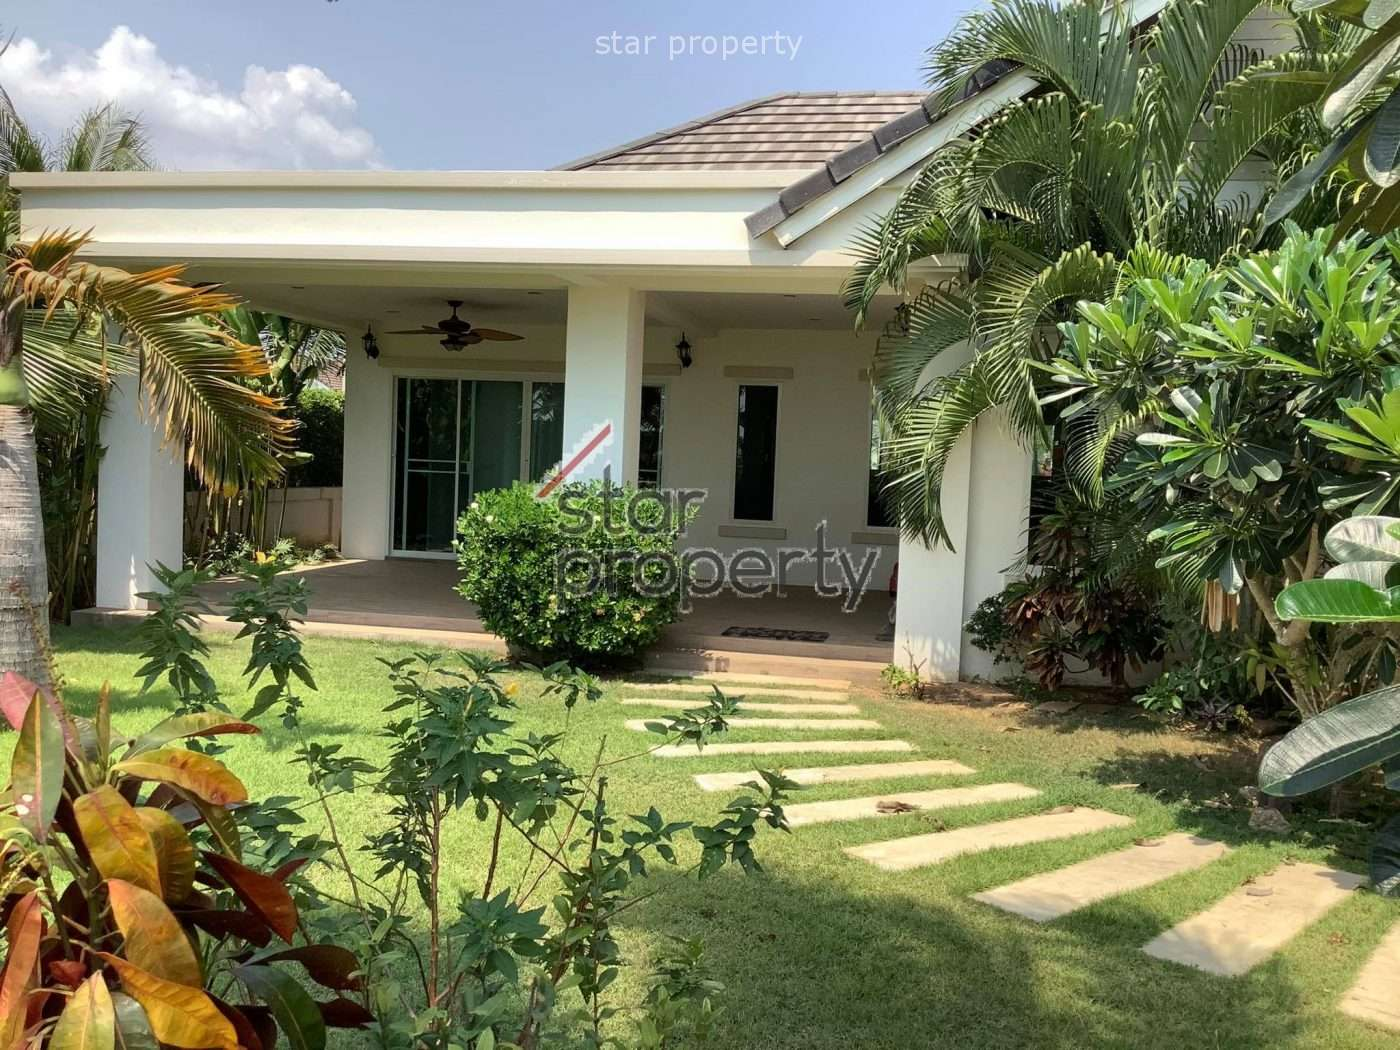 3 Bedroom Villa with Tropical Garden for Sale at Wararom Village Khao Tao